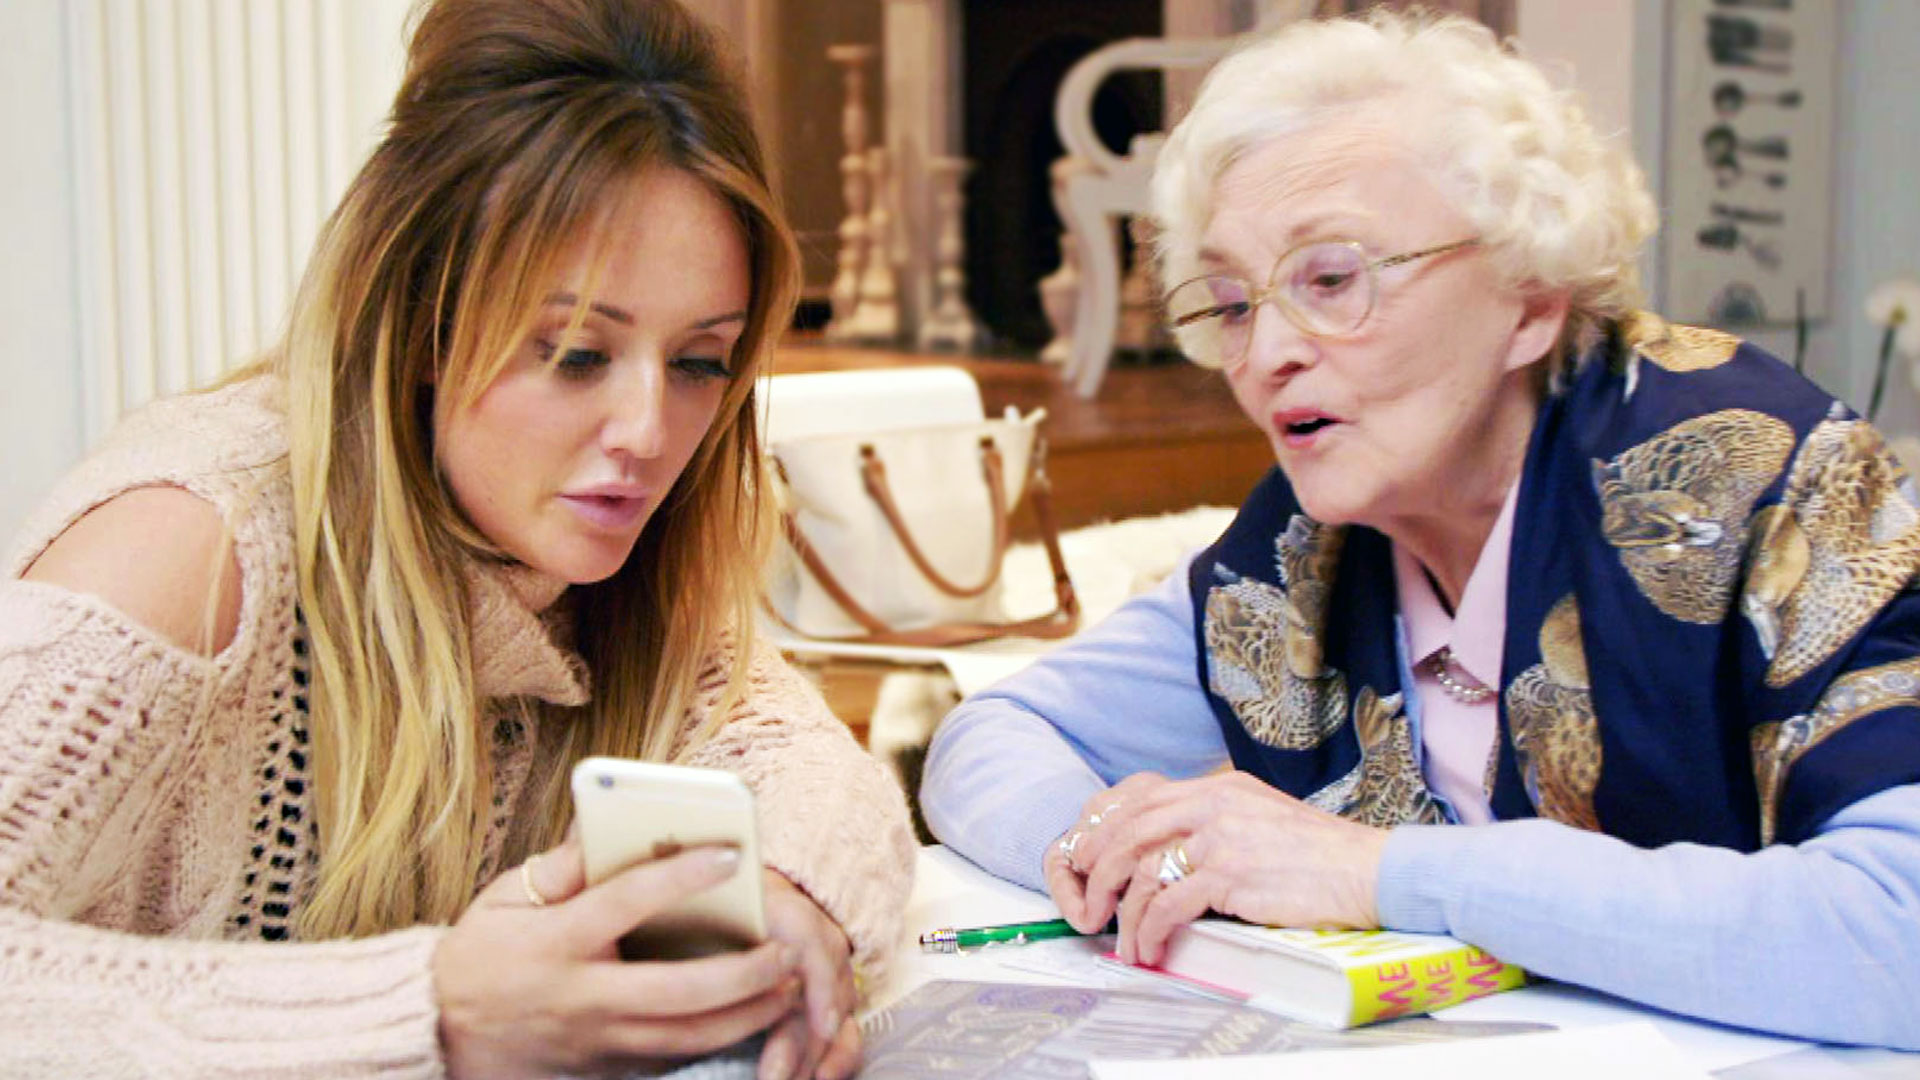 A Granny's Guide to the Modern World: Series 1 Episode 3